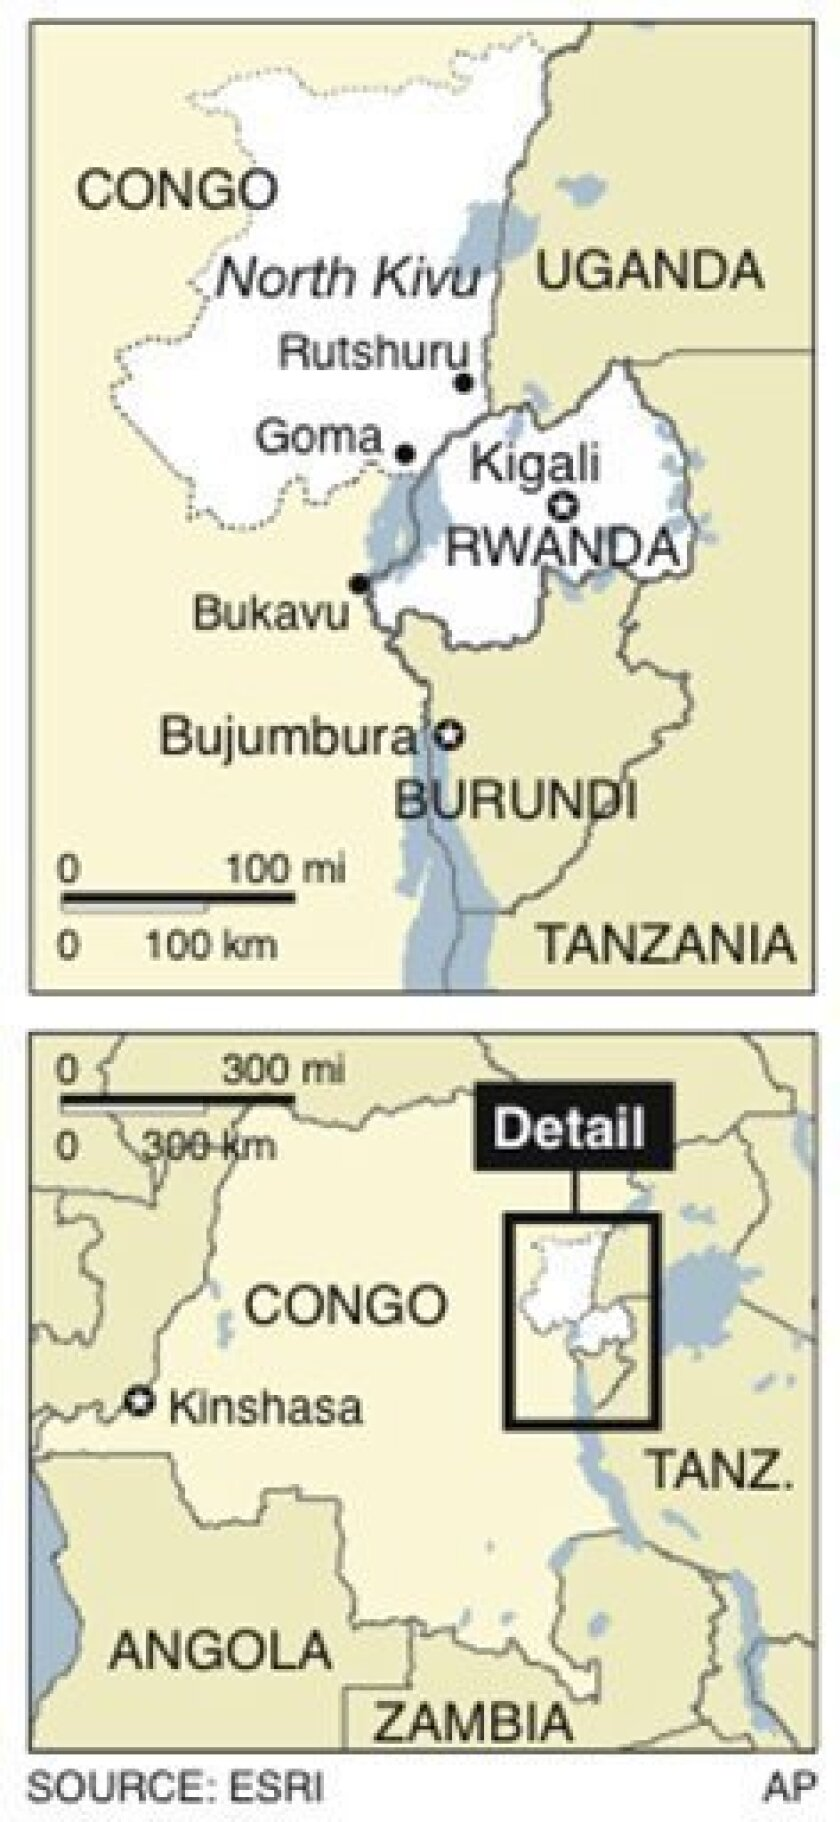 Map locates North Kivu province, Congo, where troops from Rwanda will assist the forces of Congo in fighting rebel Hutus; 1 c x 4 in; 46.5 mm x 101.6 mm